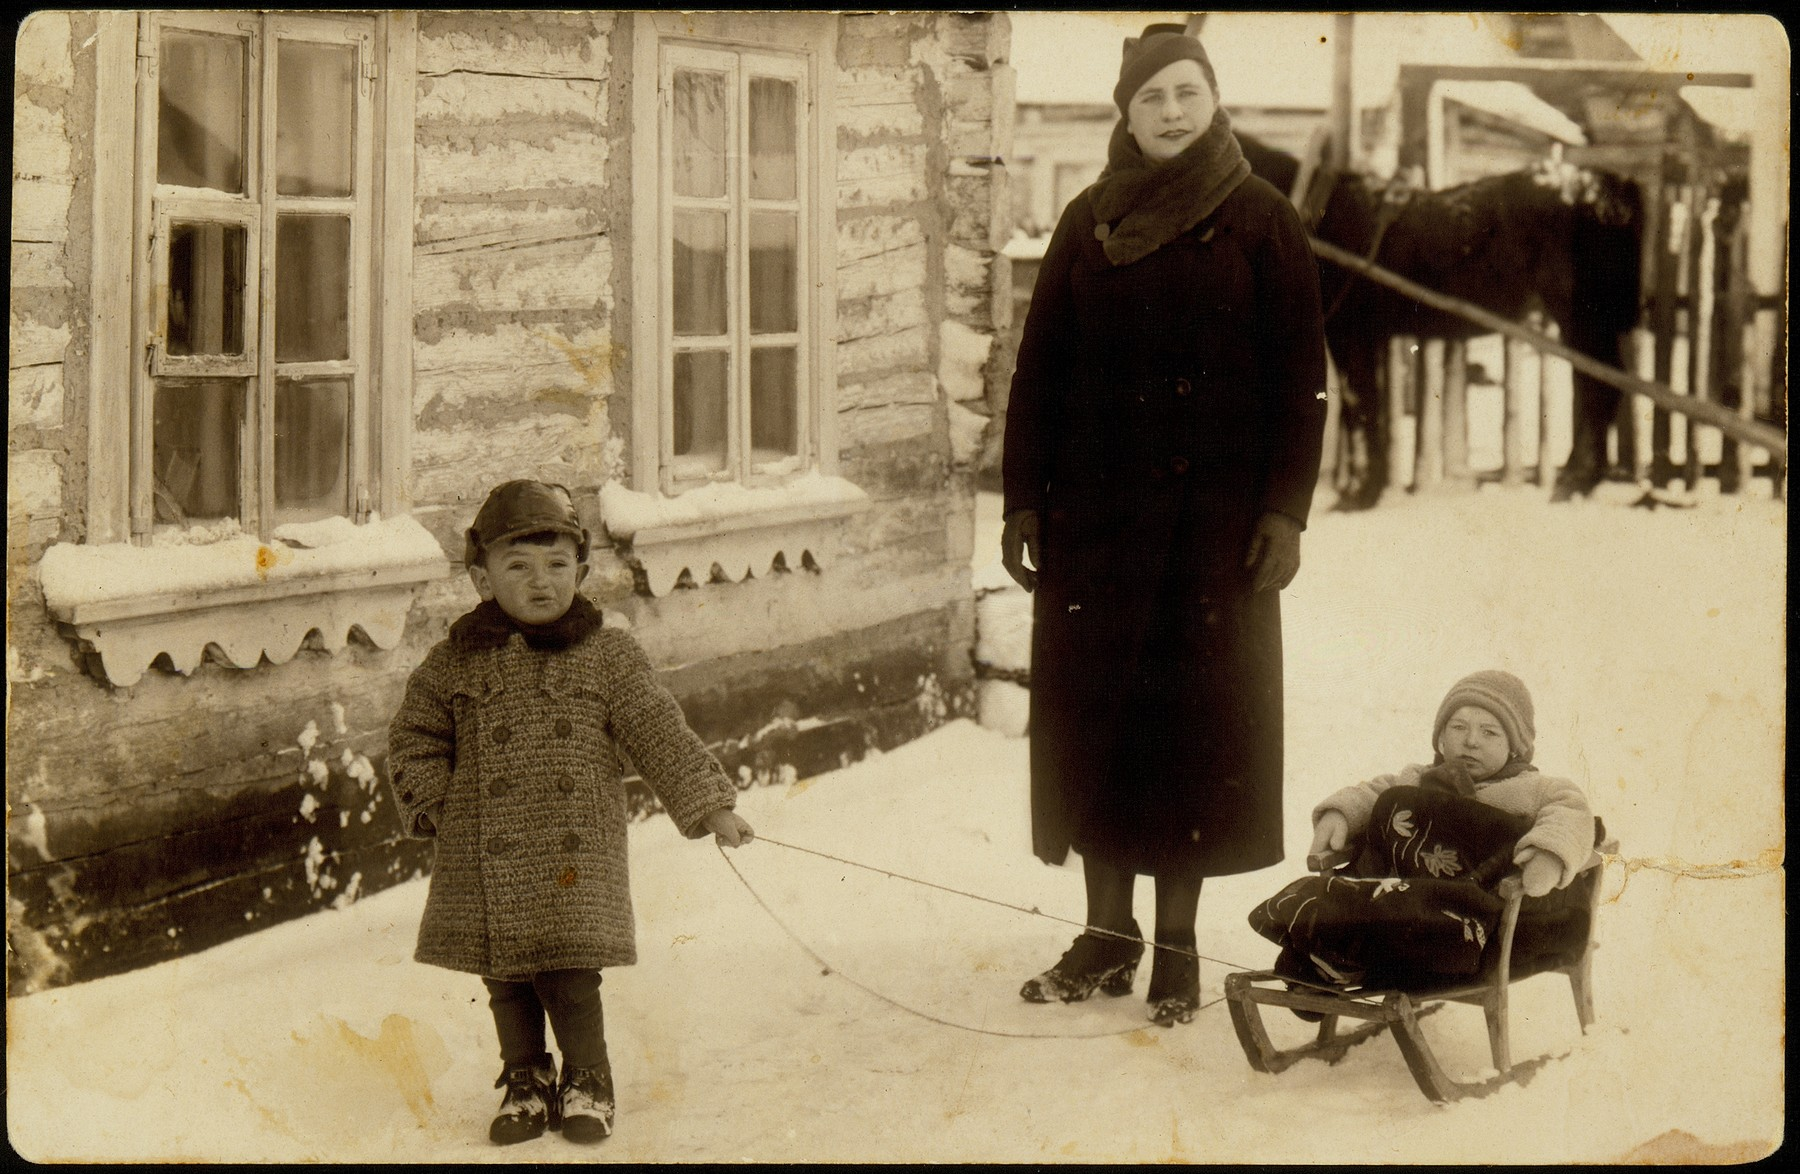 Two young Jewish cousins play in the snow in Eisiskes.  Pictured is Mtele Kaganov pulling his cousin, Yankele Kaganov on a sled in the backyard of the home of Shaina Blacharowicz.  An adult relative supervises the two children.